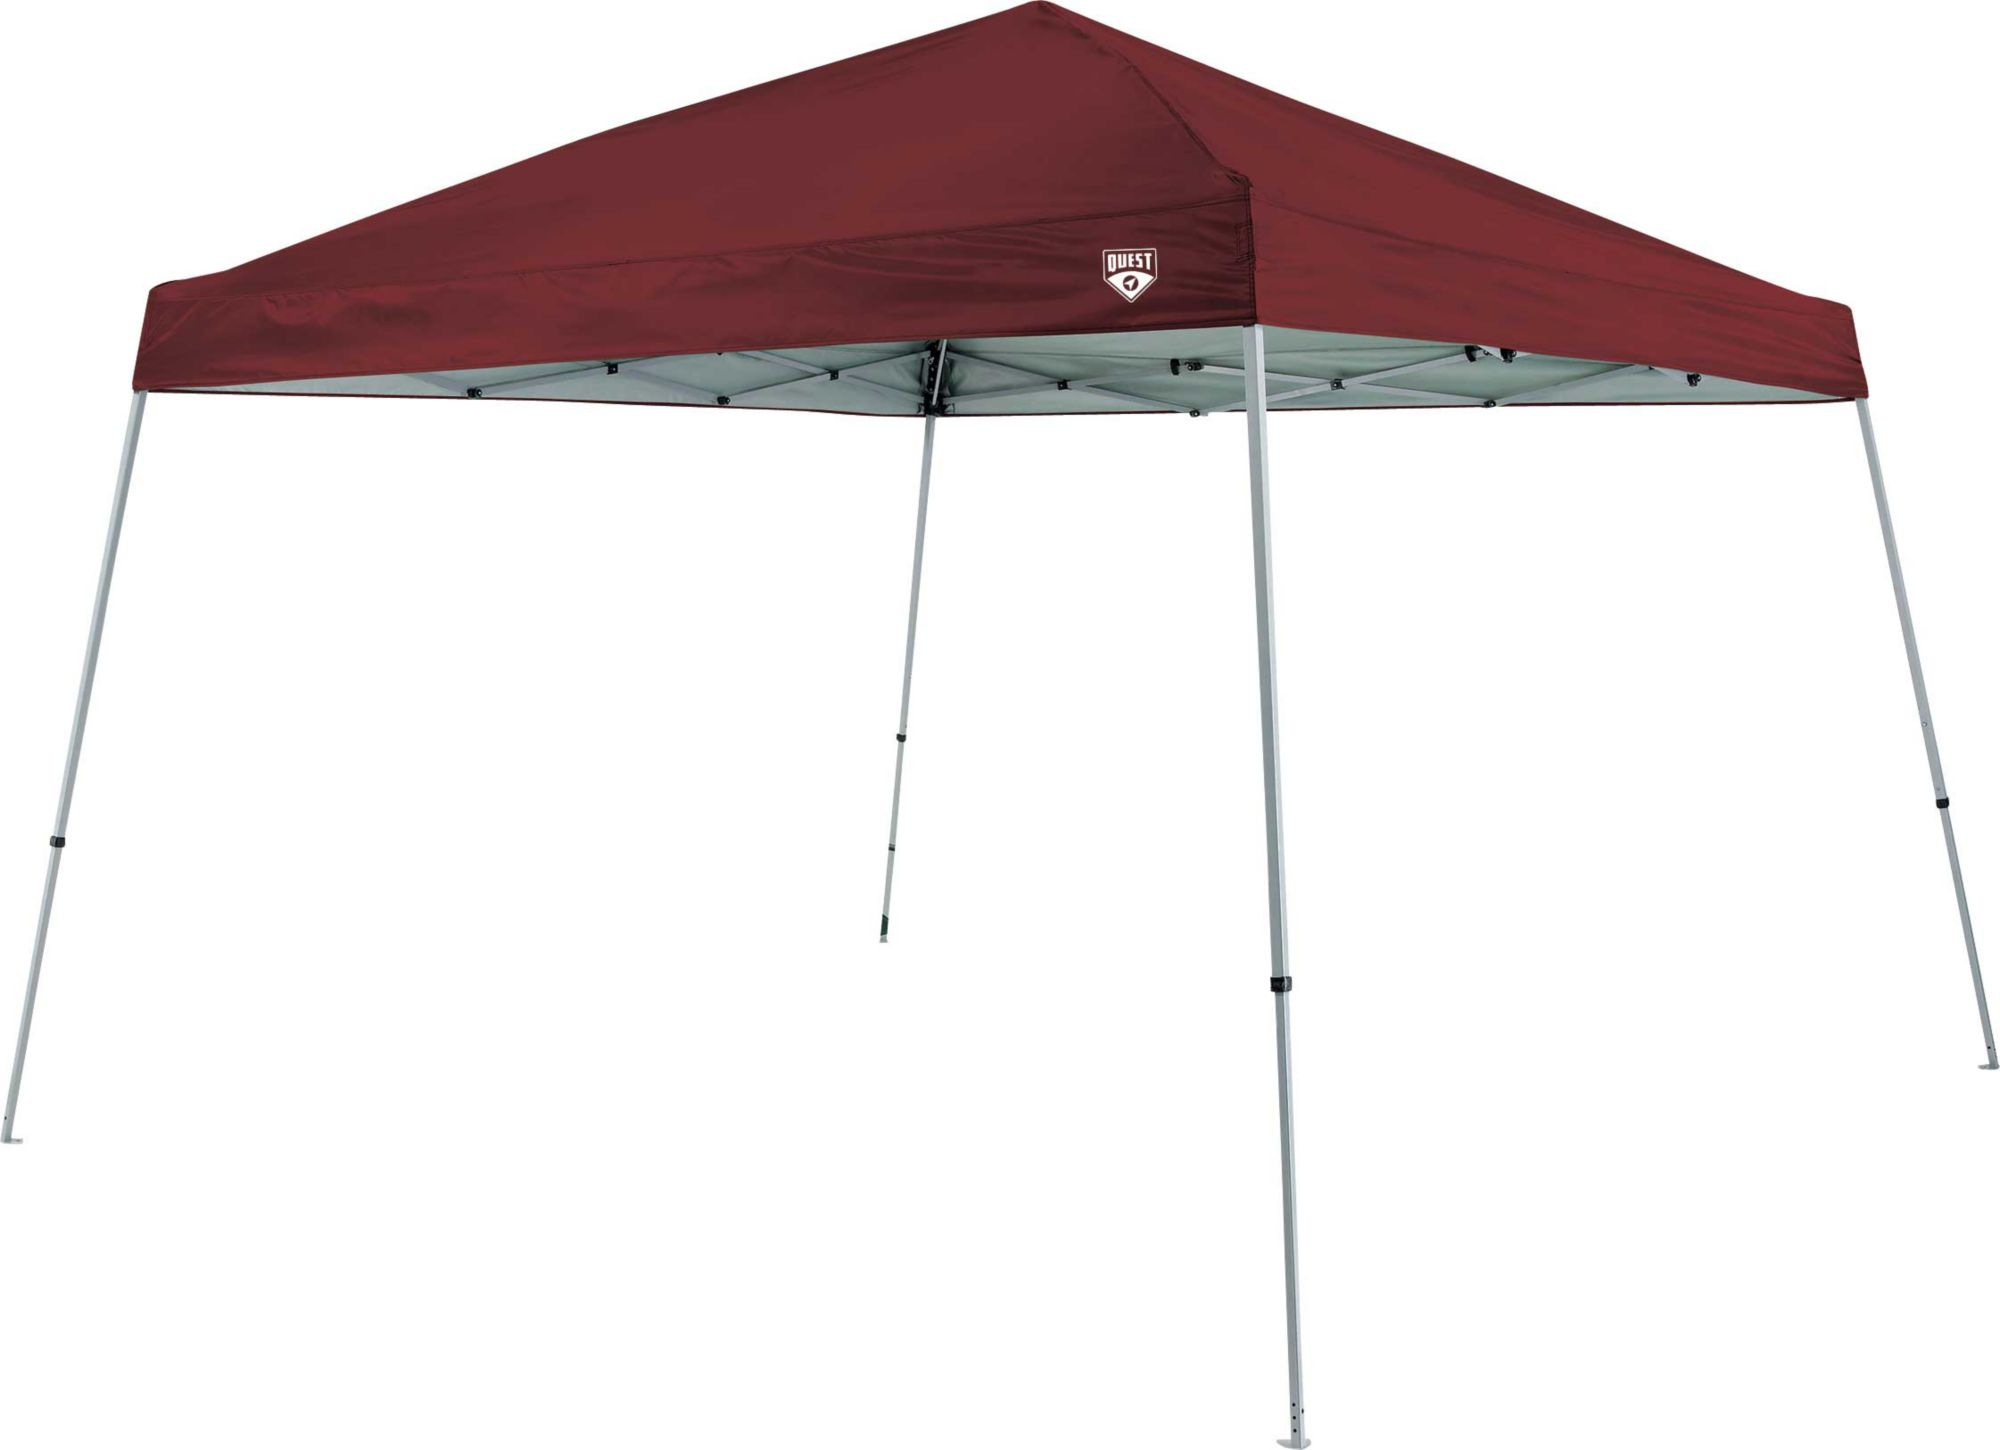 Quest Q64 10u0027 x 10u0027 Instant Up Canopy  sc 1 st  Field u0026 Stream & Quest Q64 10u0027 x 10u0027 Instant Up Canopy | Field u0026 Stream